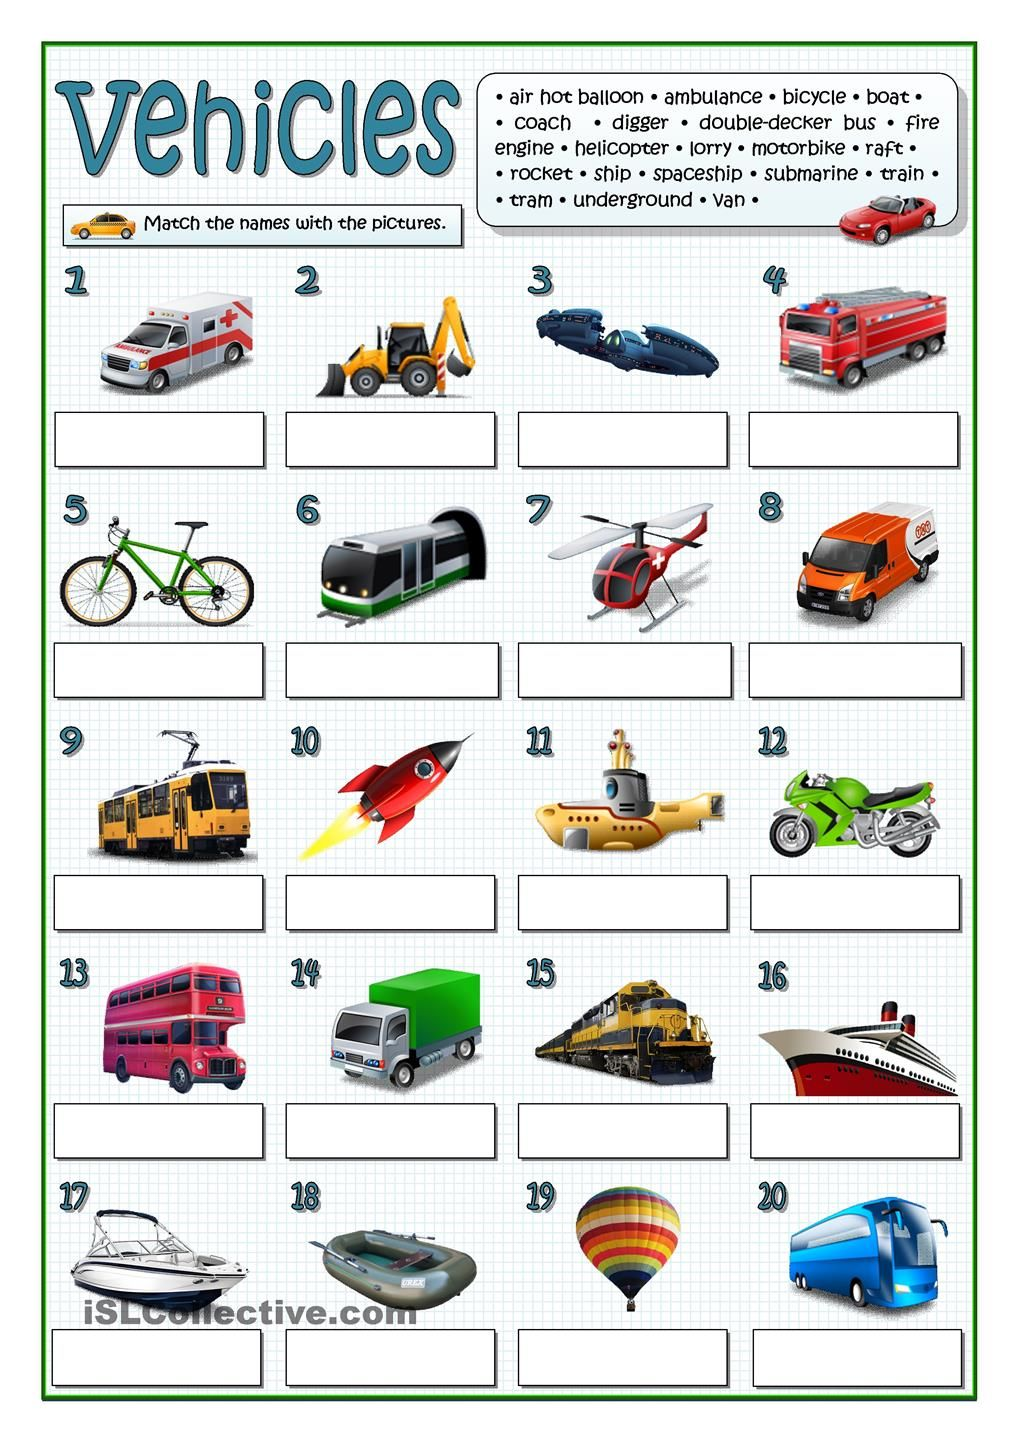 vehicles vocabulary english lessons worksheets und vehicles. Black Bedroom Furniture Sets. Home Design Ideas